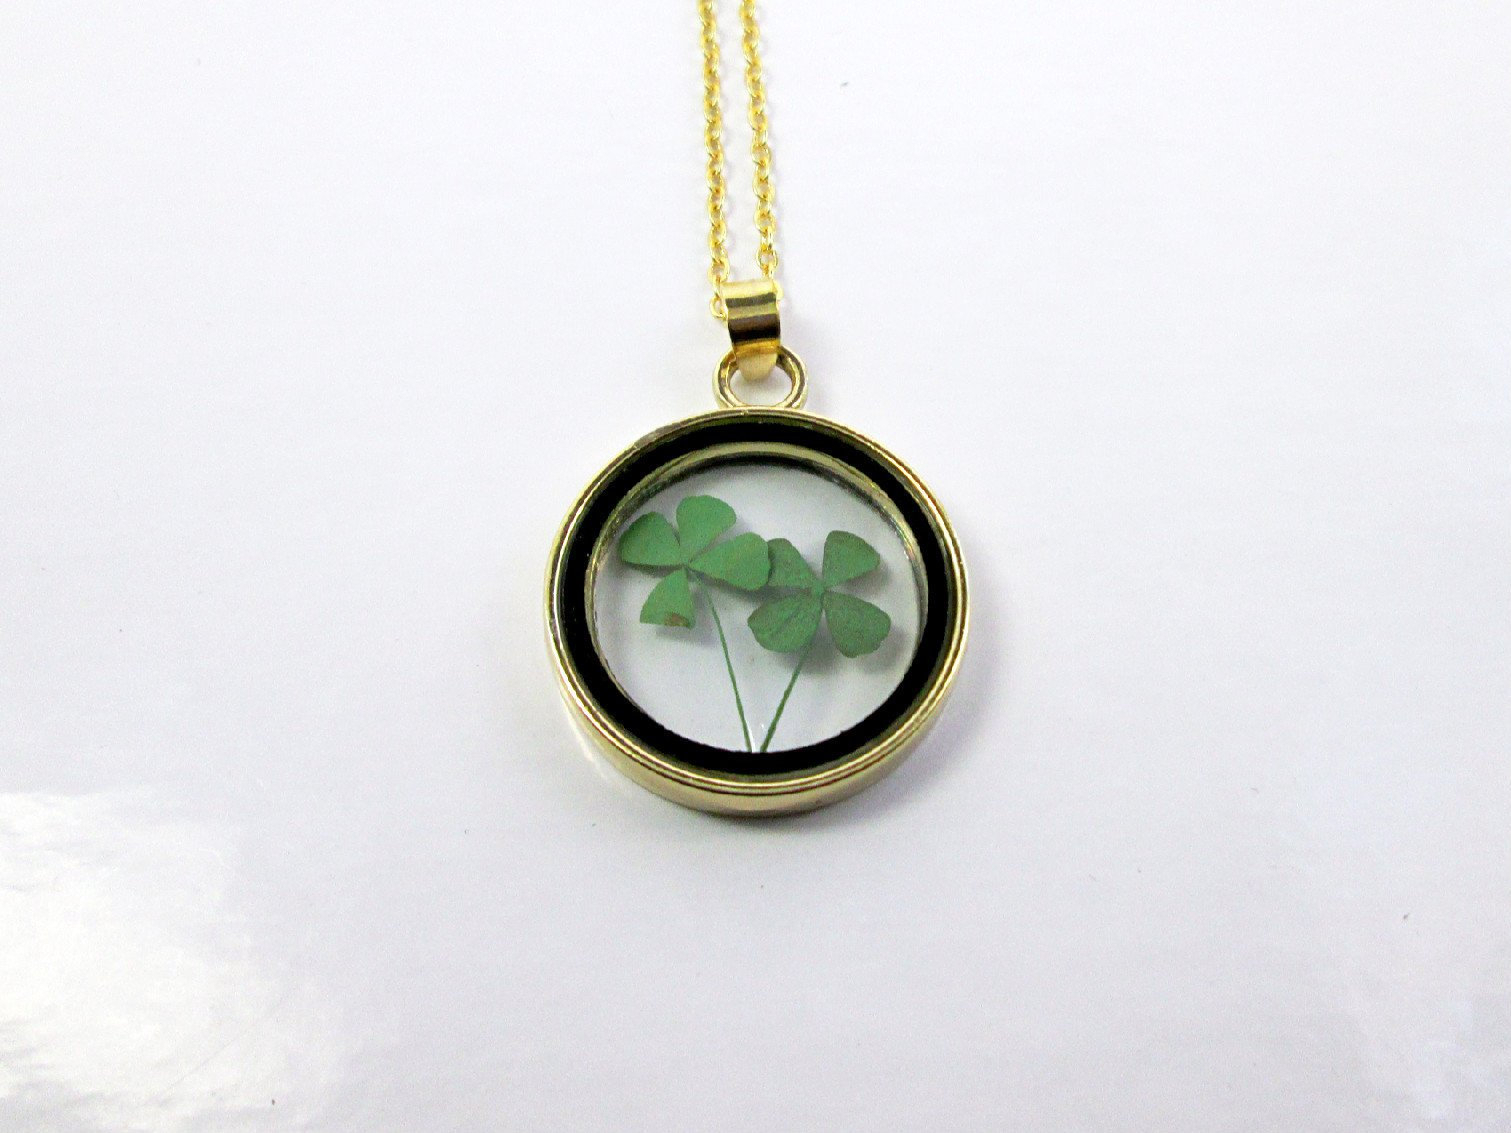 Real Four Leaf Clover Necklace Emerald Green Shamrock Glass Pendant  Necklace Irish Jewelry Good Luck Jewelry Nature Necklace Teen Jewelry Throughout Most Current Lucky Four Leaf Clover Locket Element Necklaces (View 21 of 25)